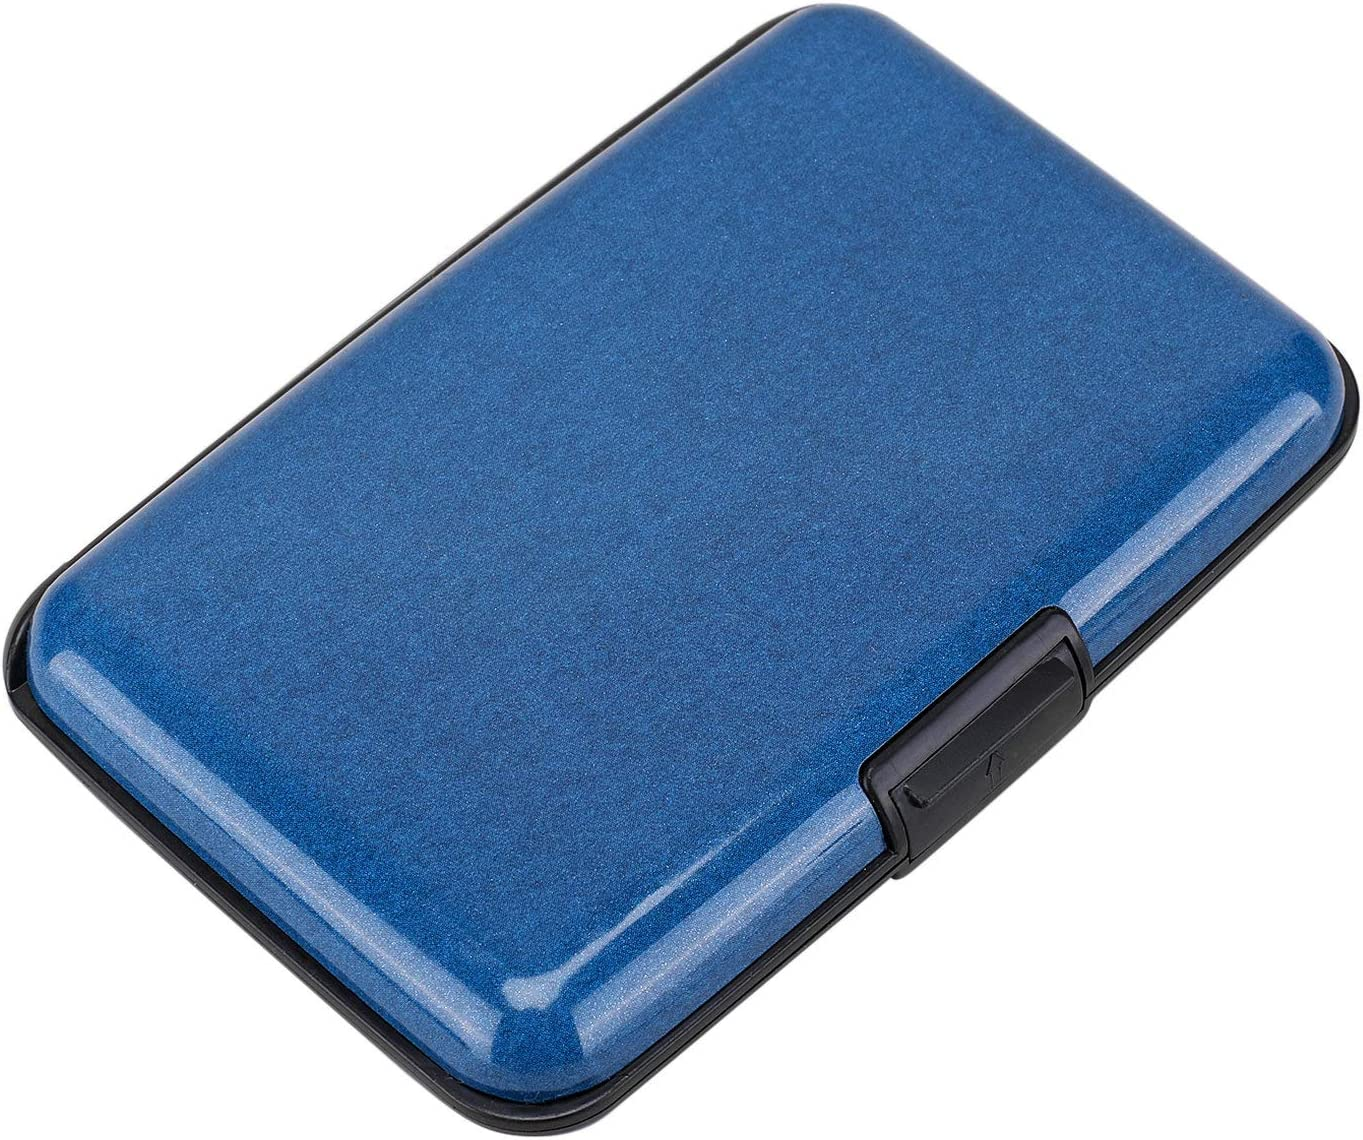 Elfish RFID Blocking Credit Card Protector Aluminum ID Case Hard Shell Business Card Holders Metal Wallet for Men or Women (dark blue)